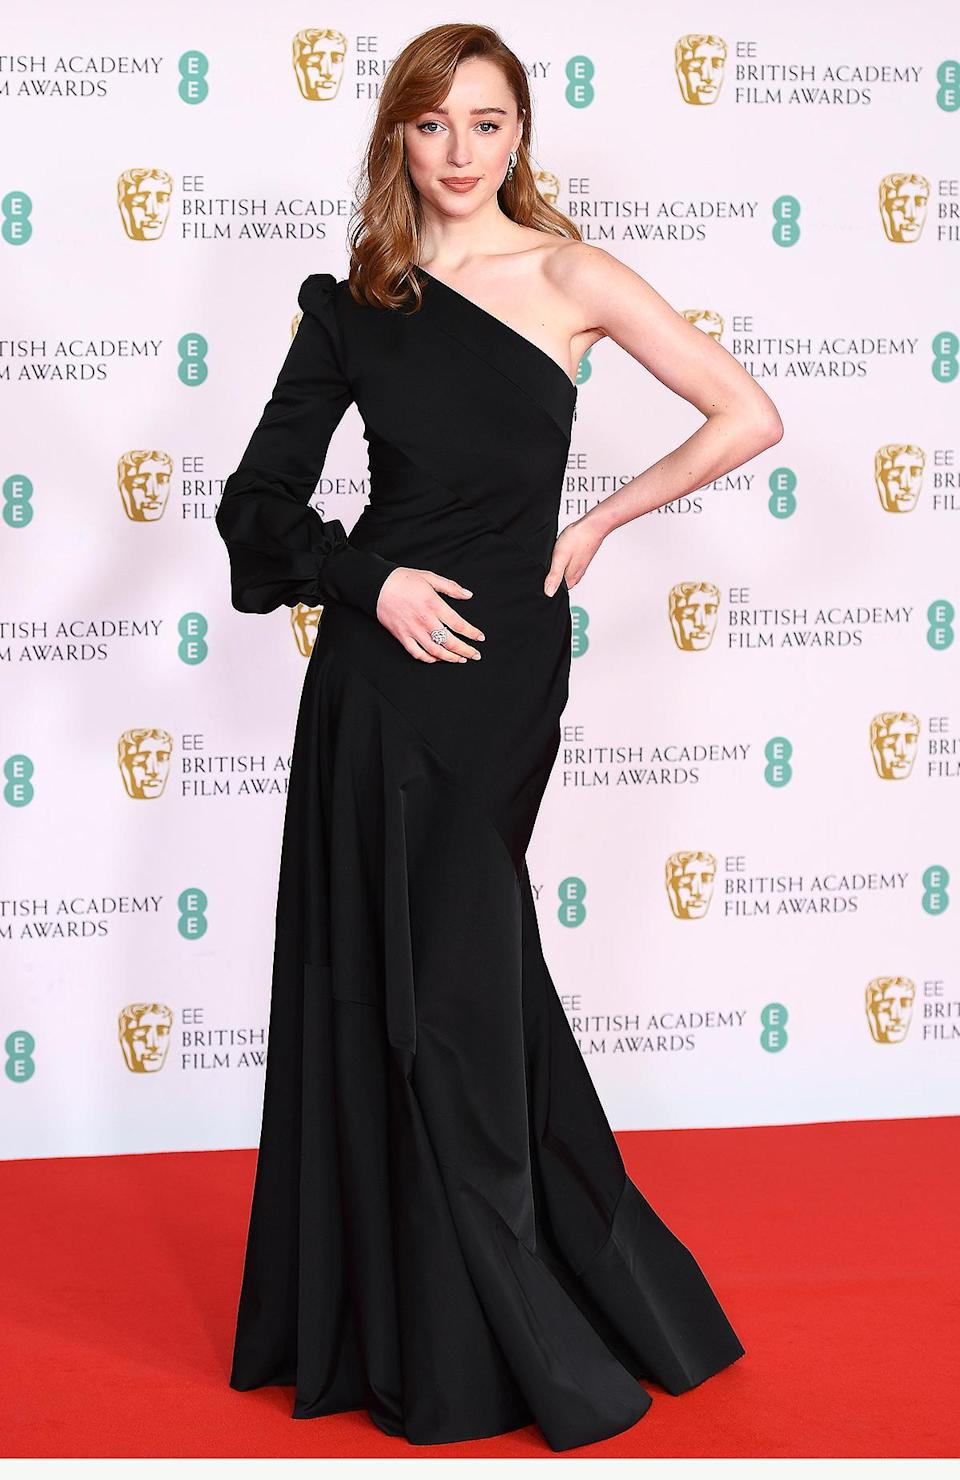 <p>makes her red carpet debut in a custom Louis Vuitton gown, with earrings and ring from the brand's High Jewelry collection. </p>